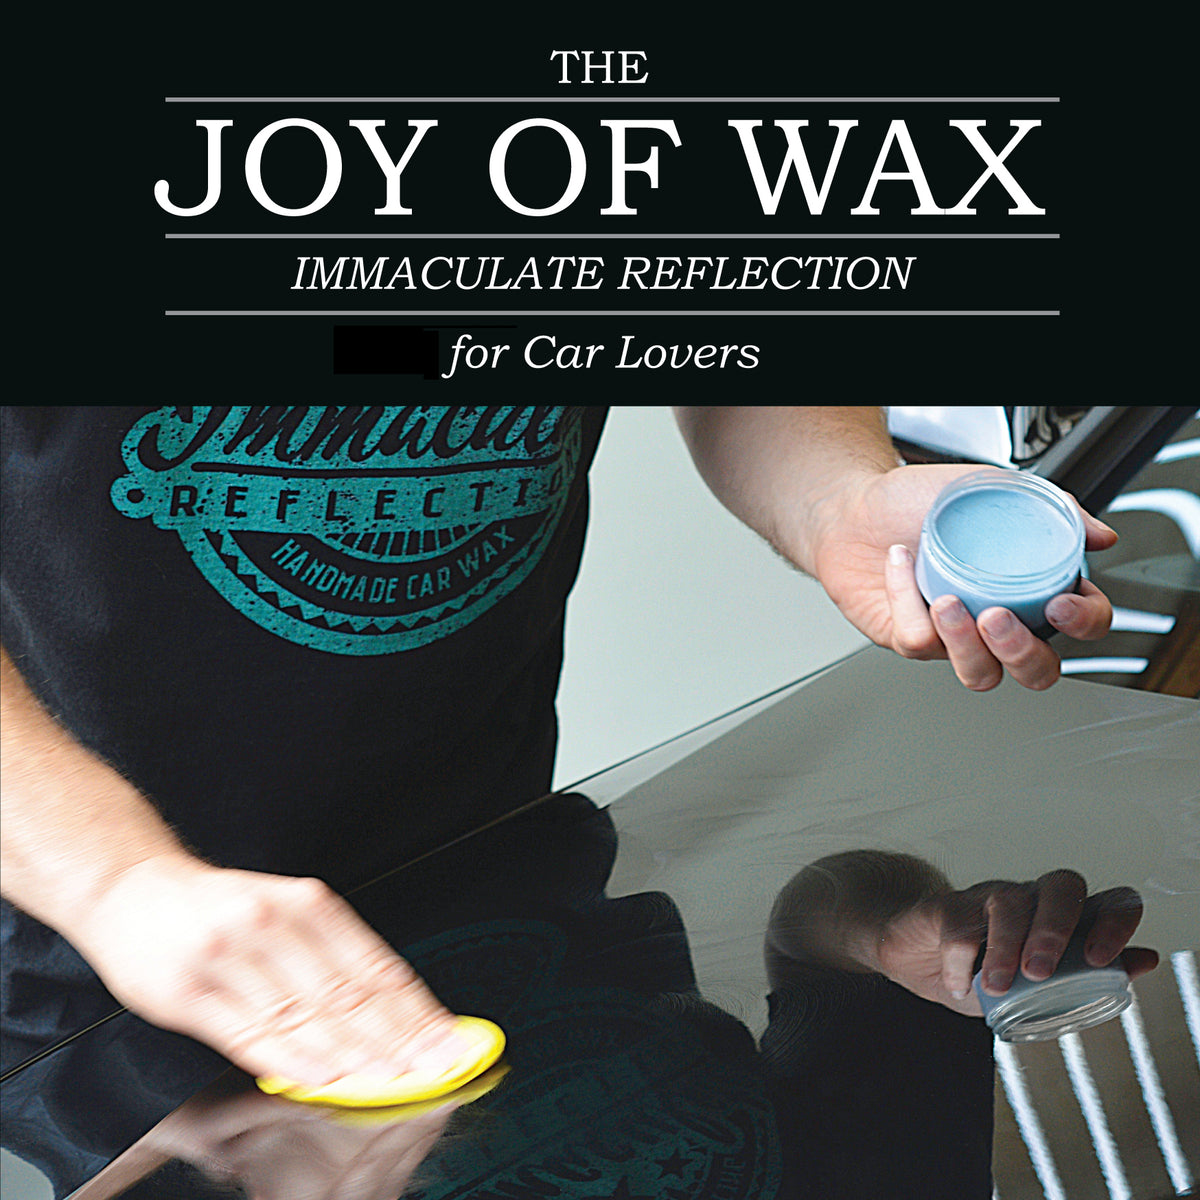 Immaculate Reflection Joy of wax, for car lovers. Applying hand made blue bubblegum car wax to car bonnet by hand with a yellow sponge wax applicator.